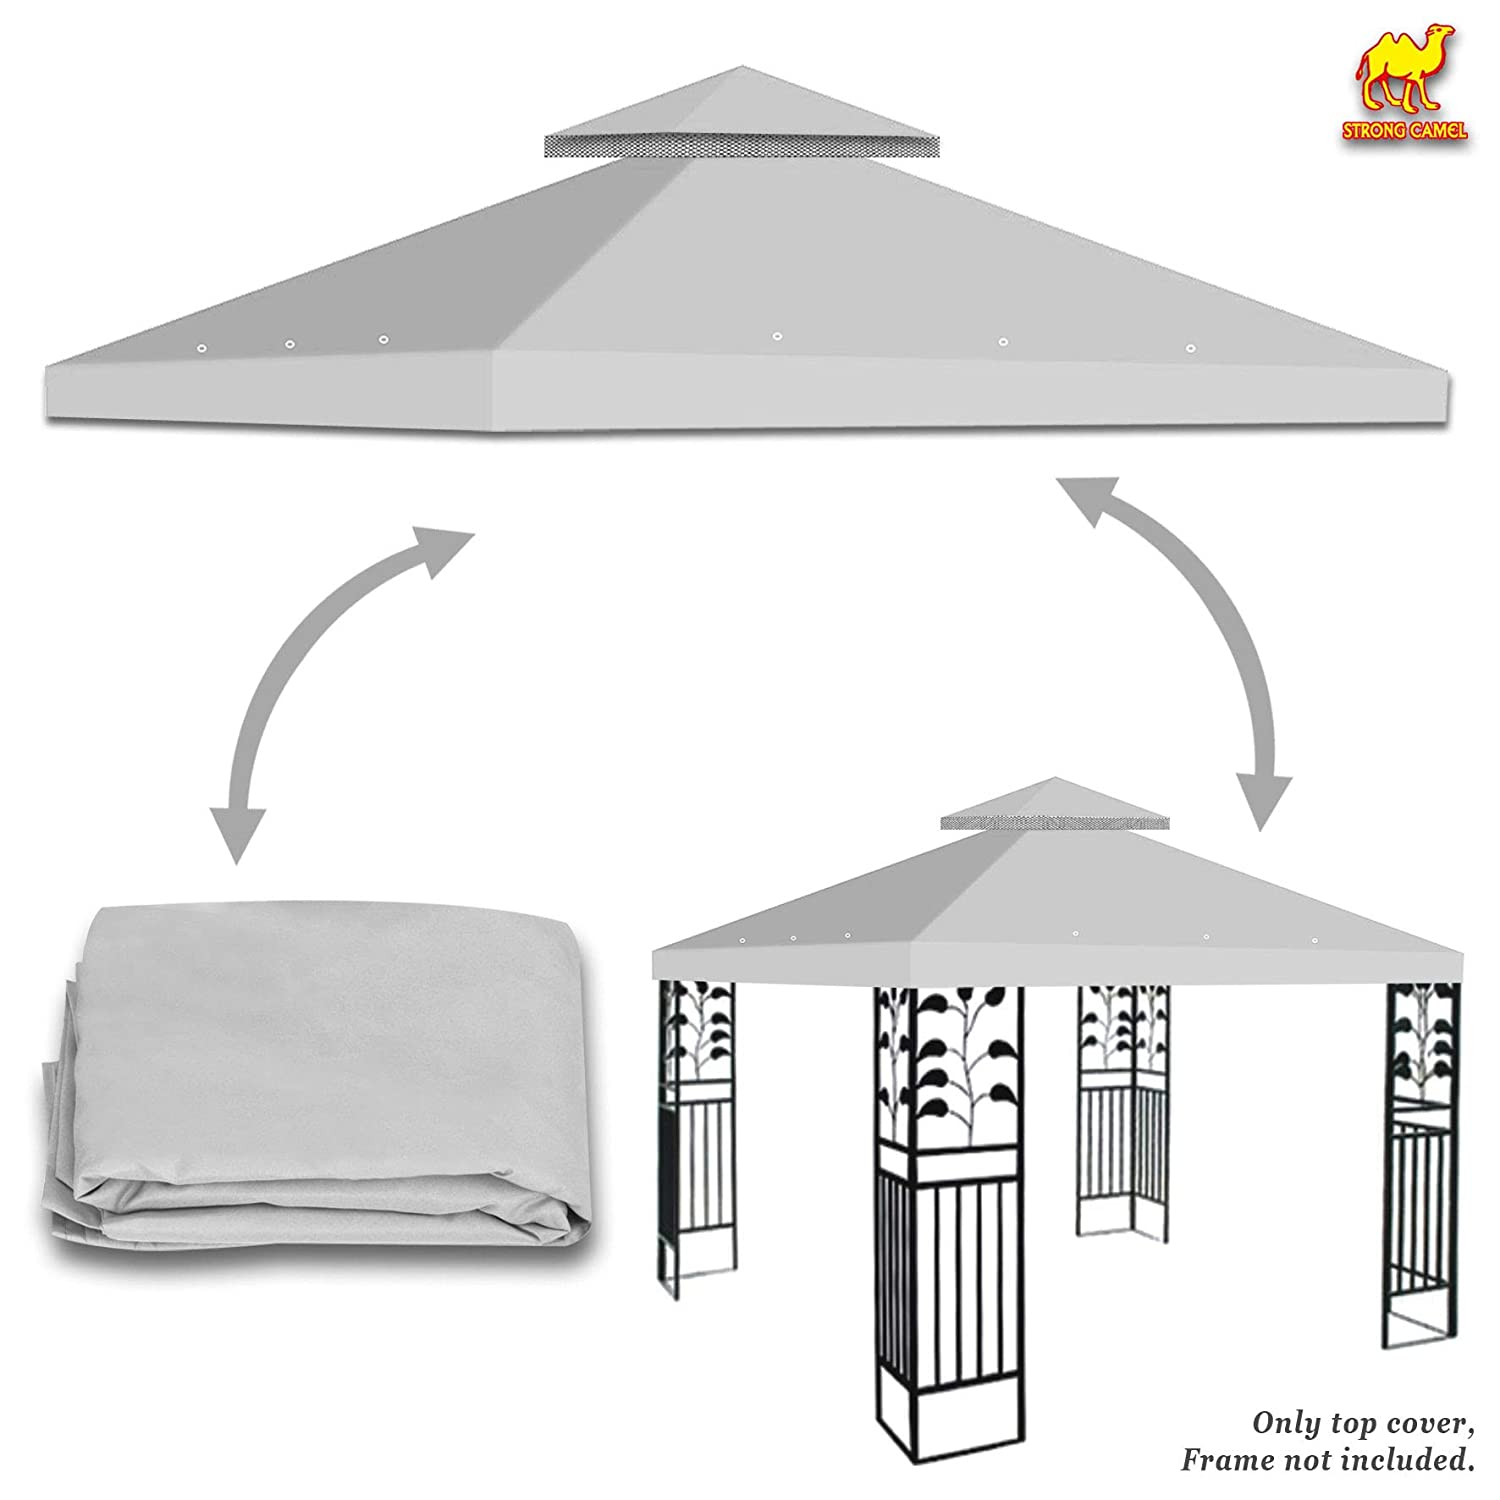 Strong Camel Dual Tier Gazebo Replacement 10' x 10' Canopy Top Cover Awning Roof Top Cover (Ecru)